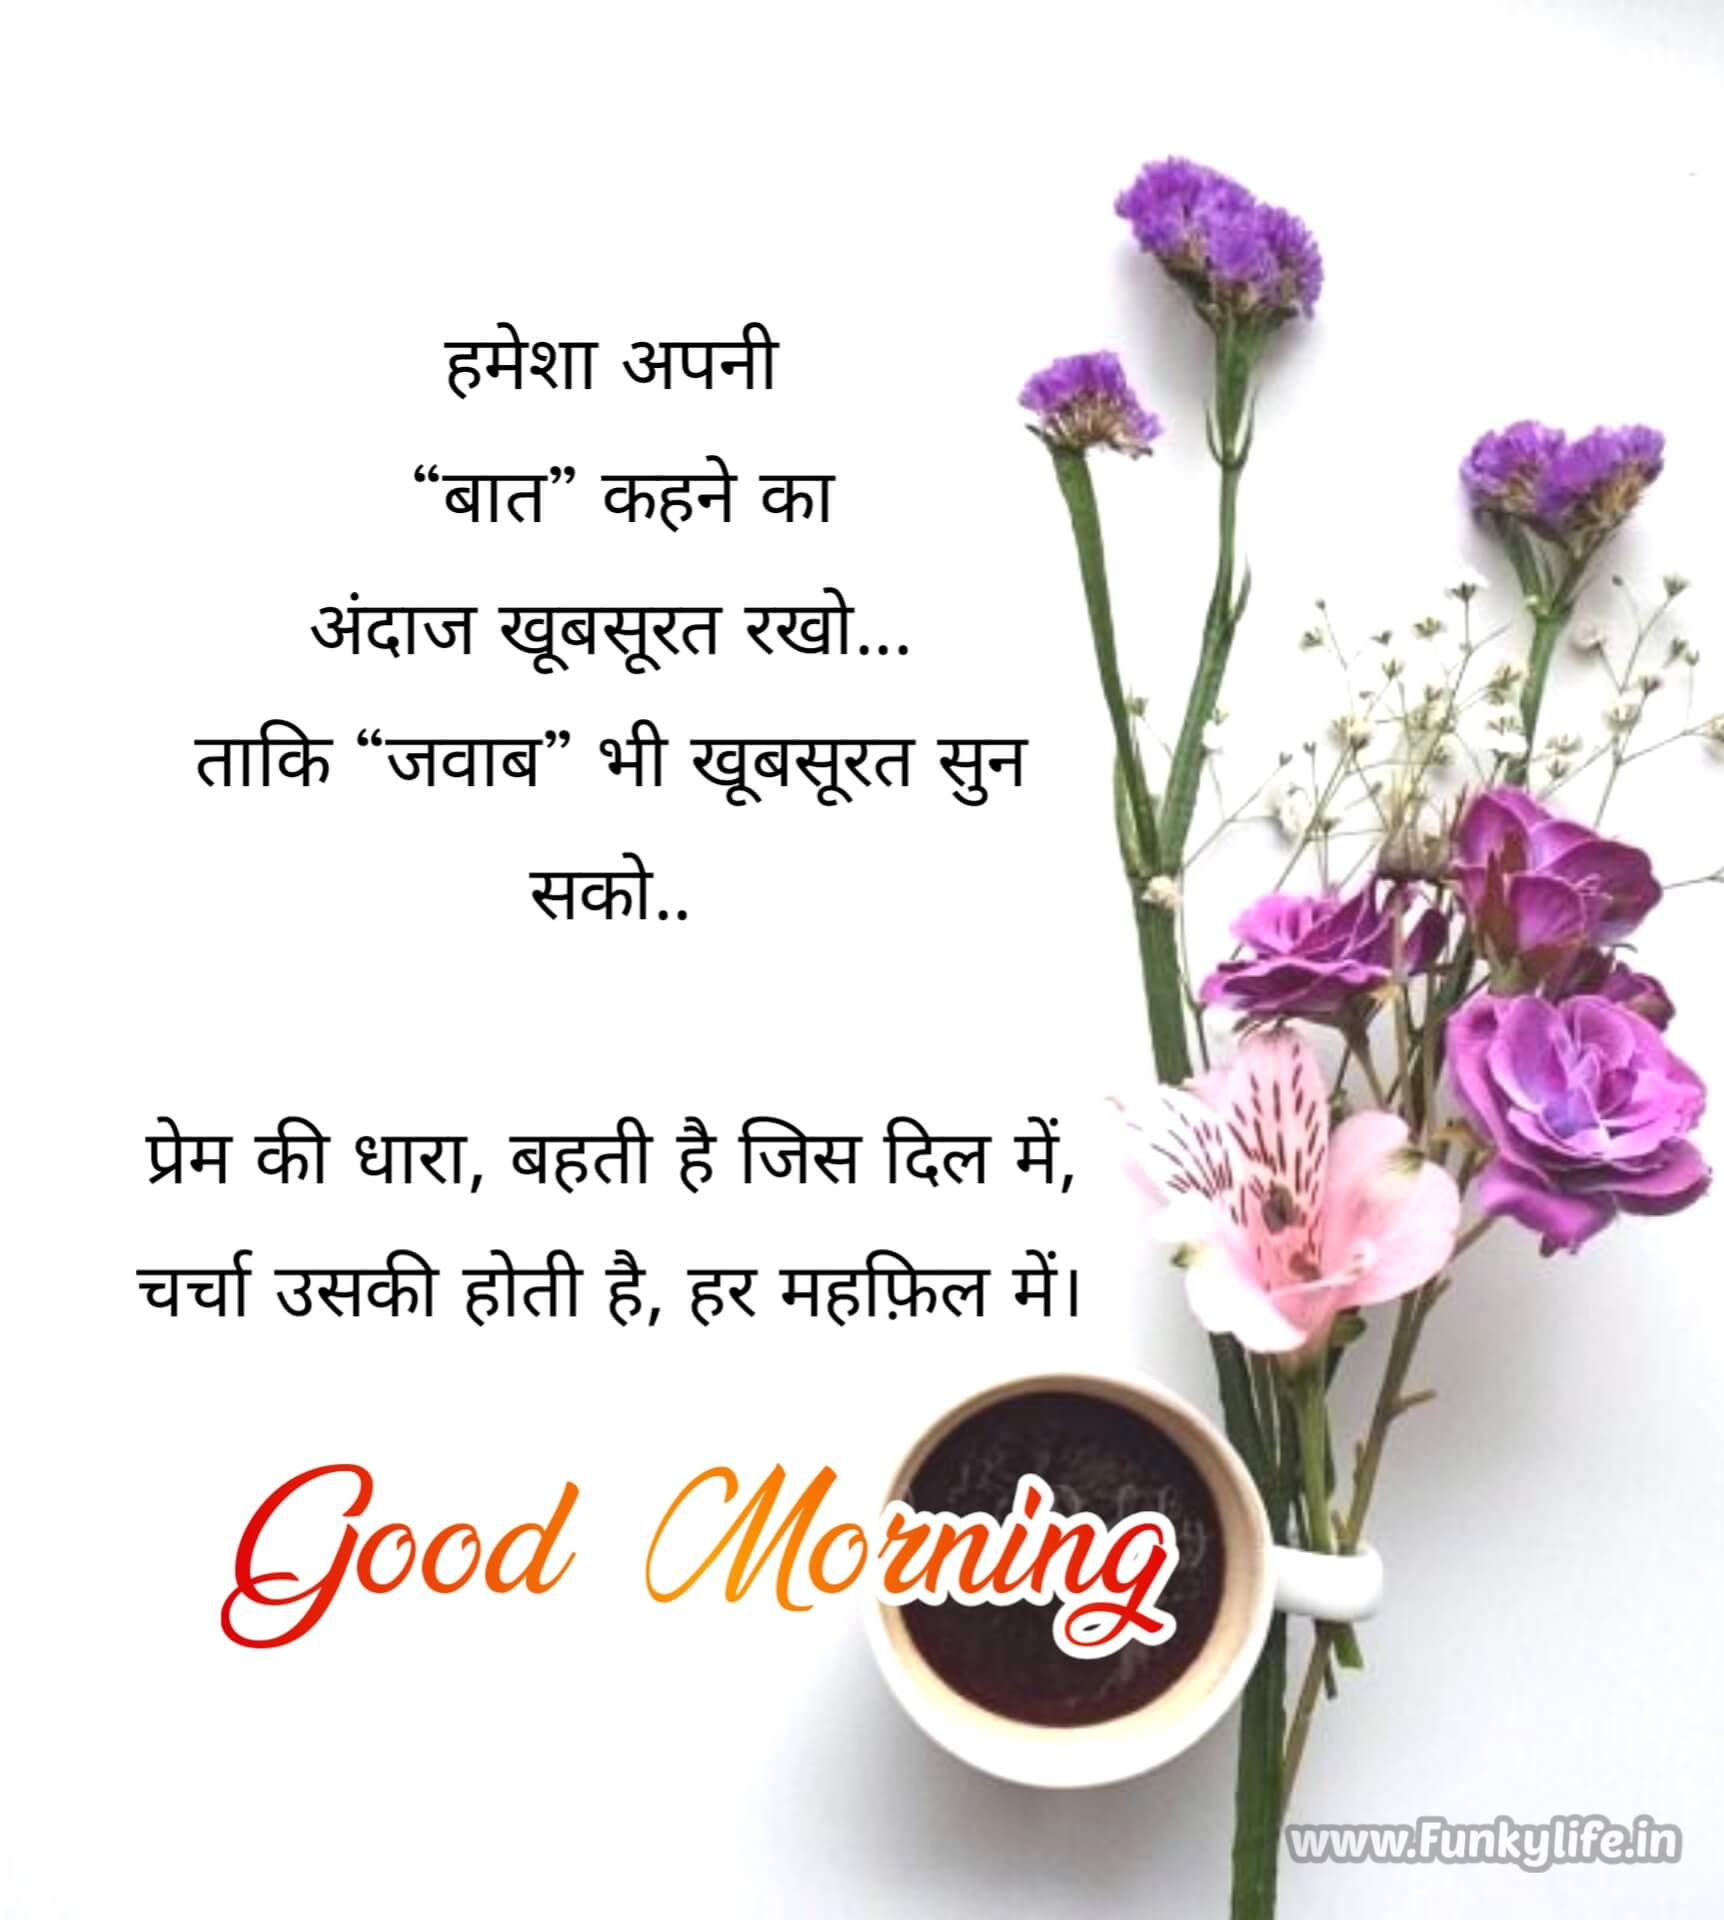 good morning quotes in Hindi  for WhatsApp Suvichar